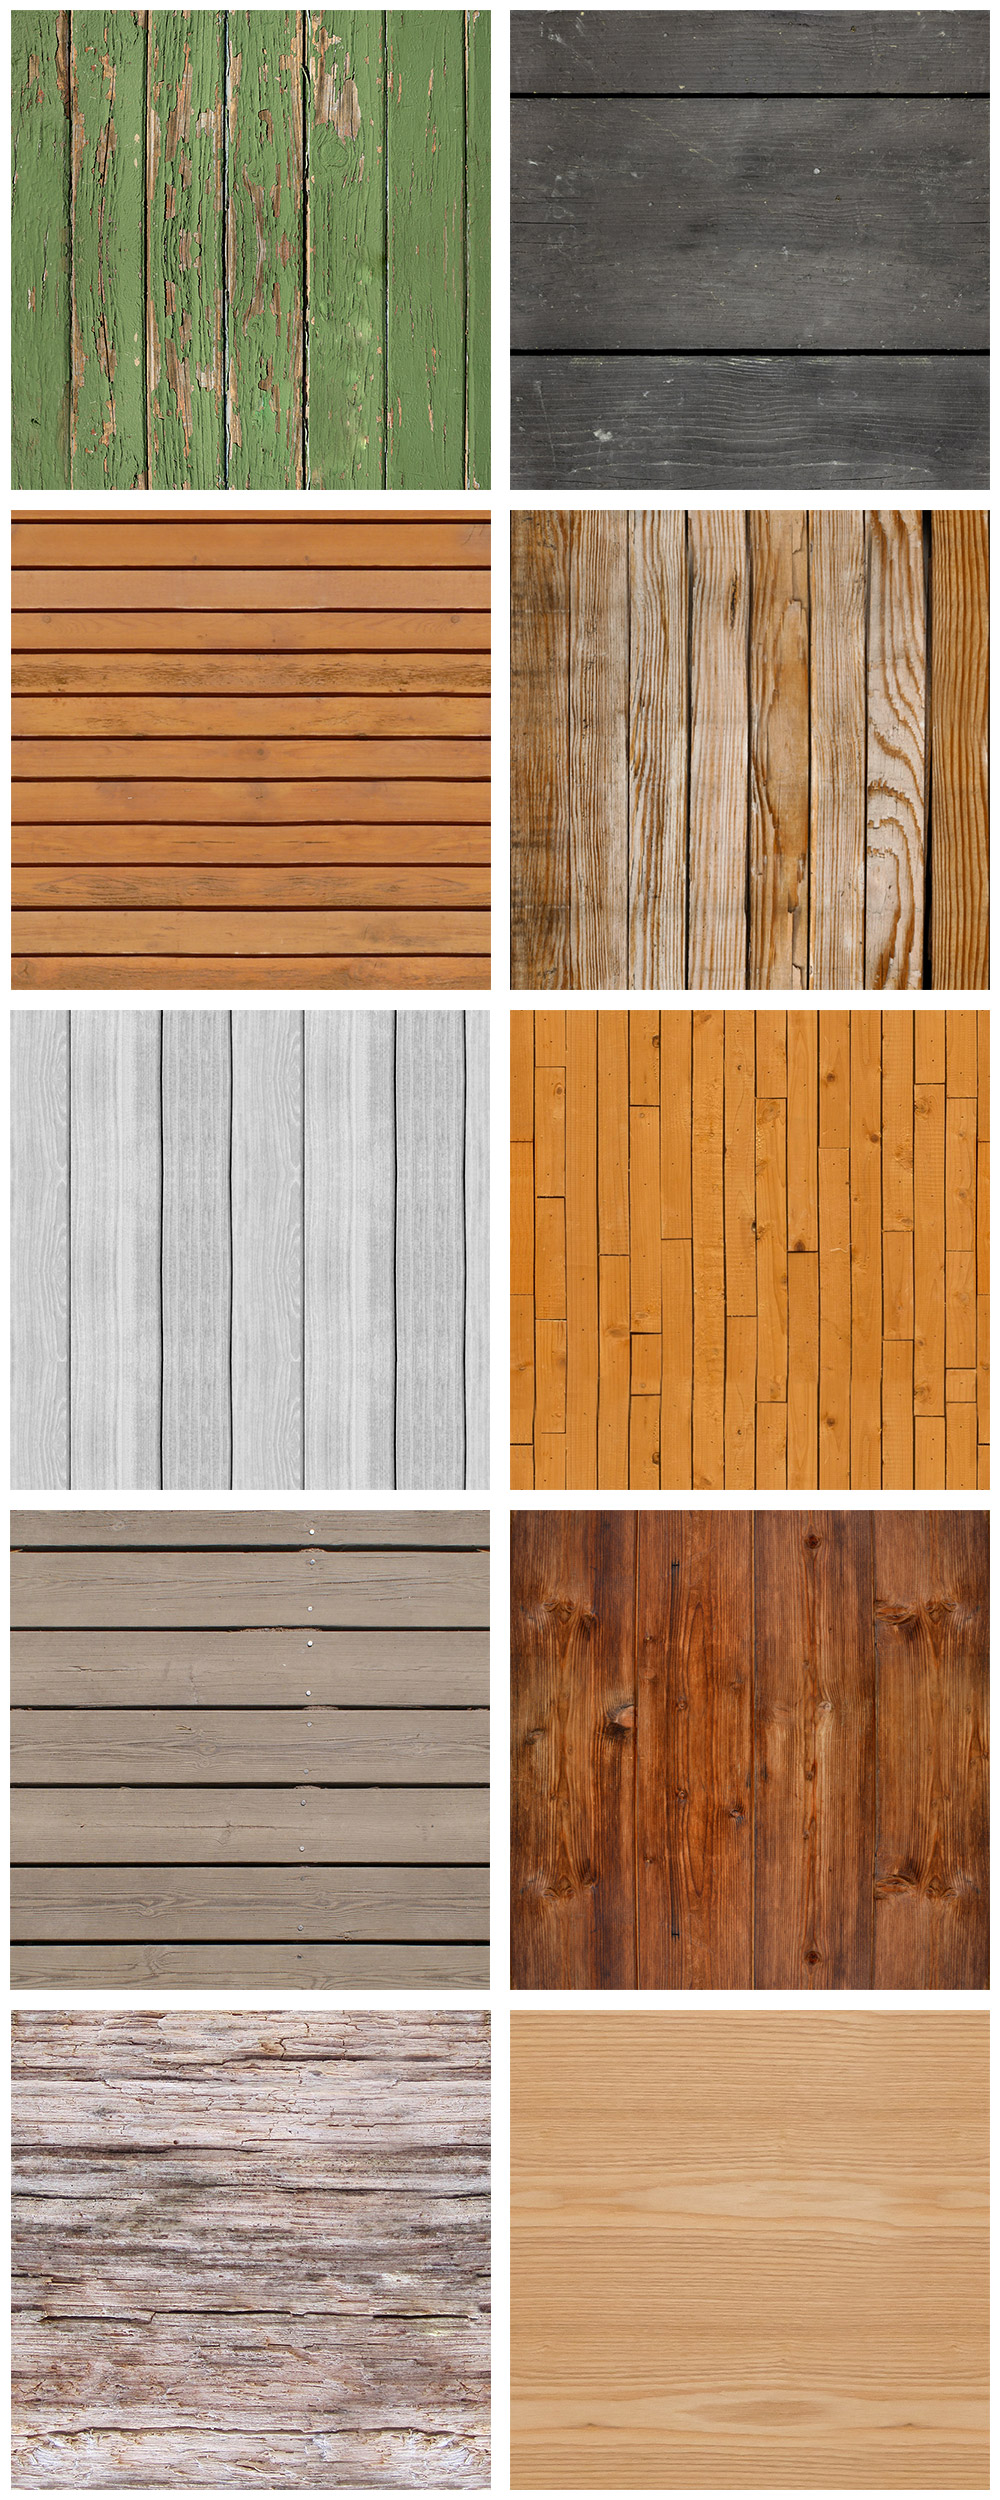 Free Tileable Wood Patterns